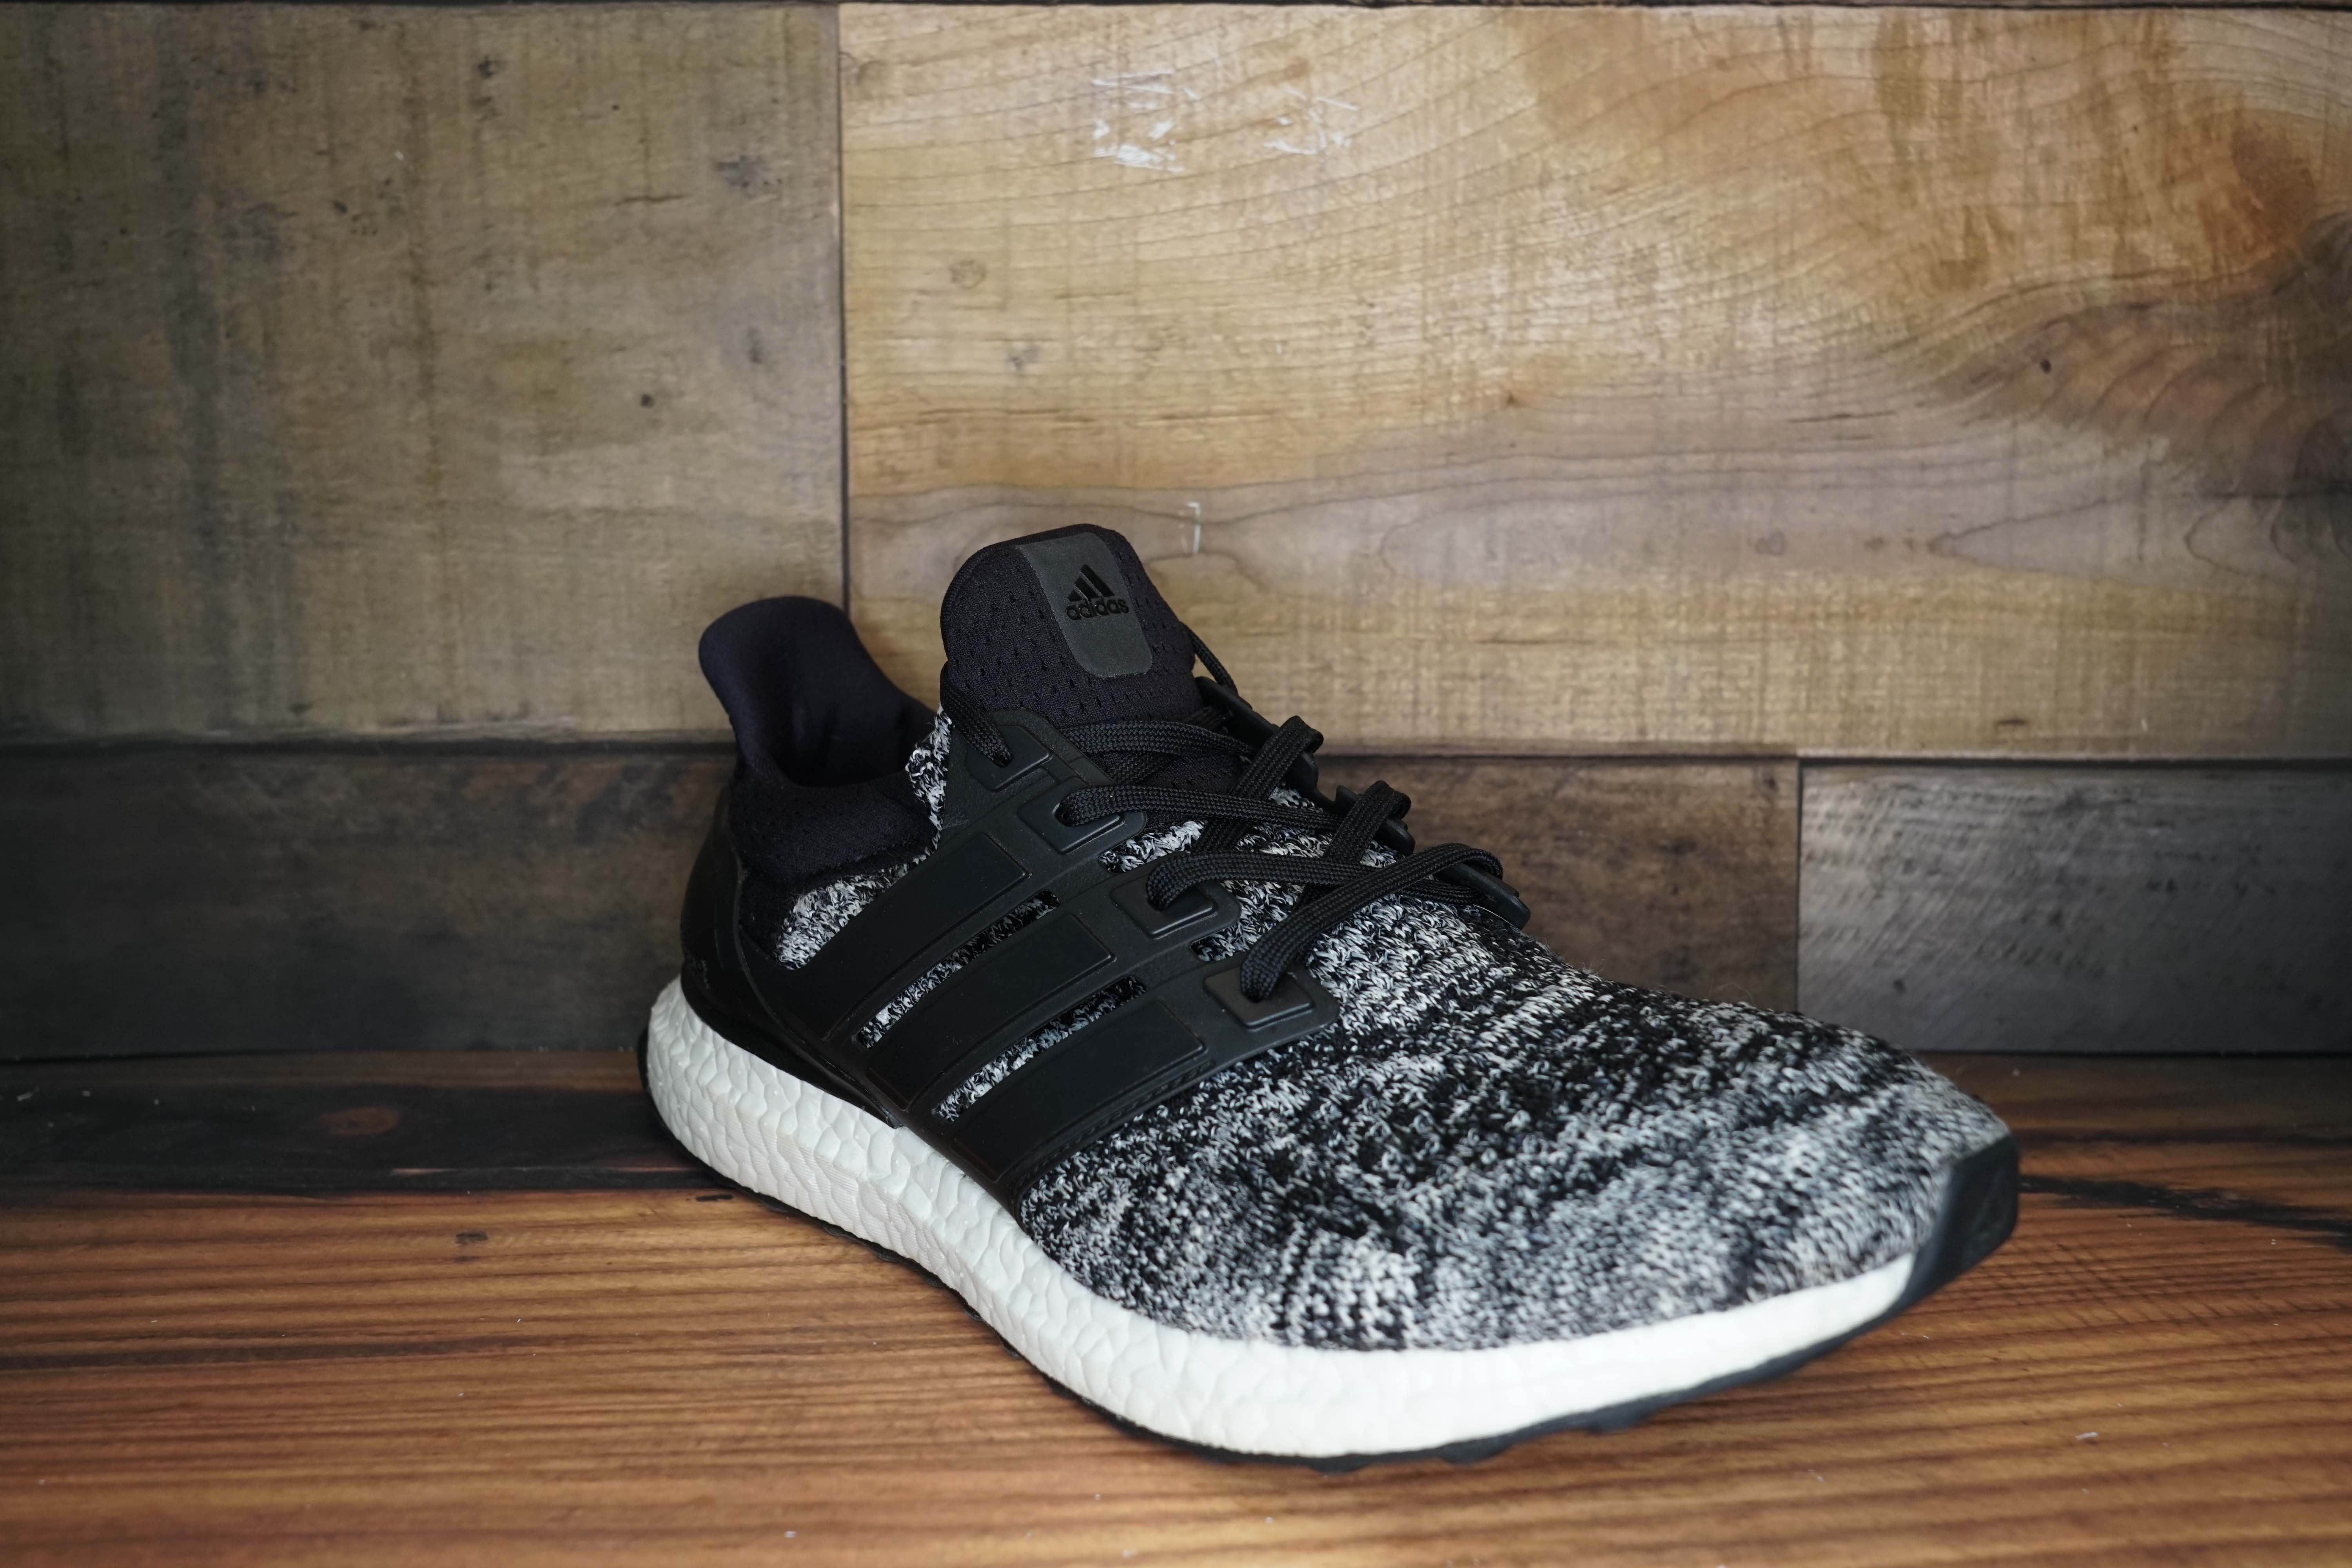 9ec3b16b29406 ... sweden shoe adidas ultraboost m reigning champ 2016 used original .